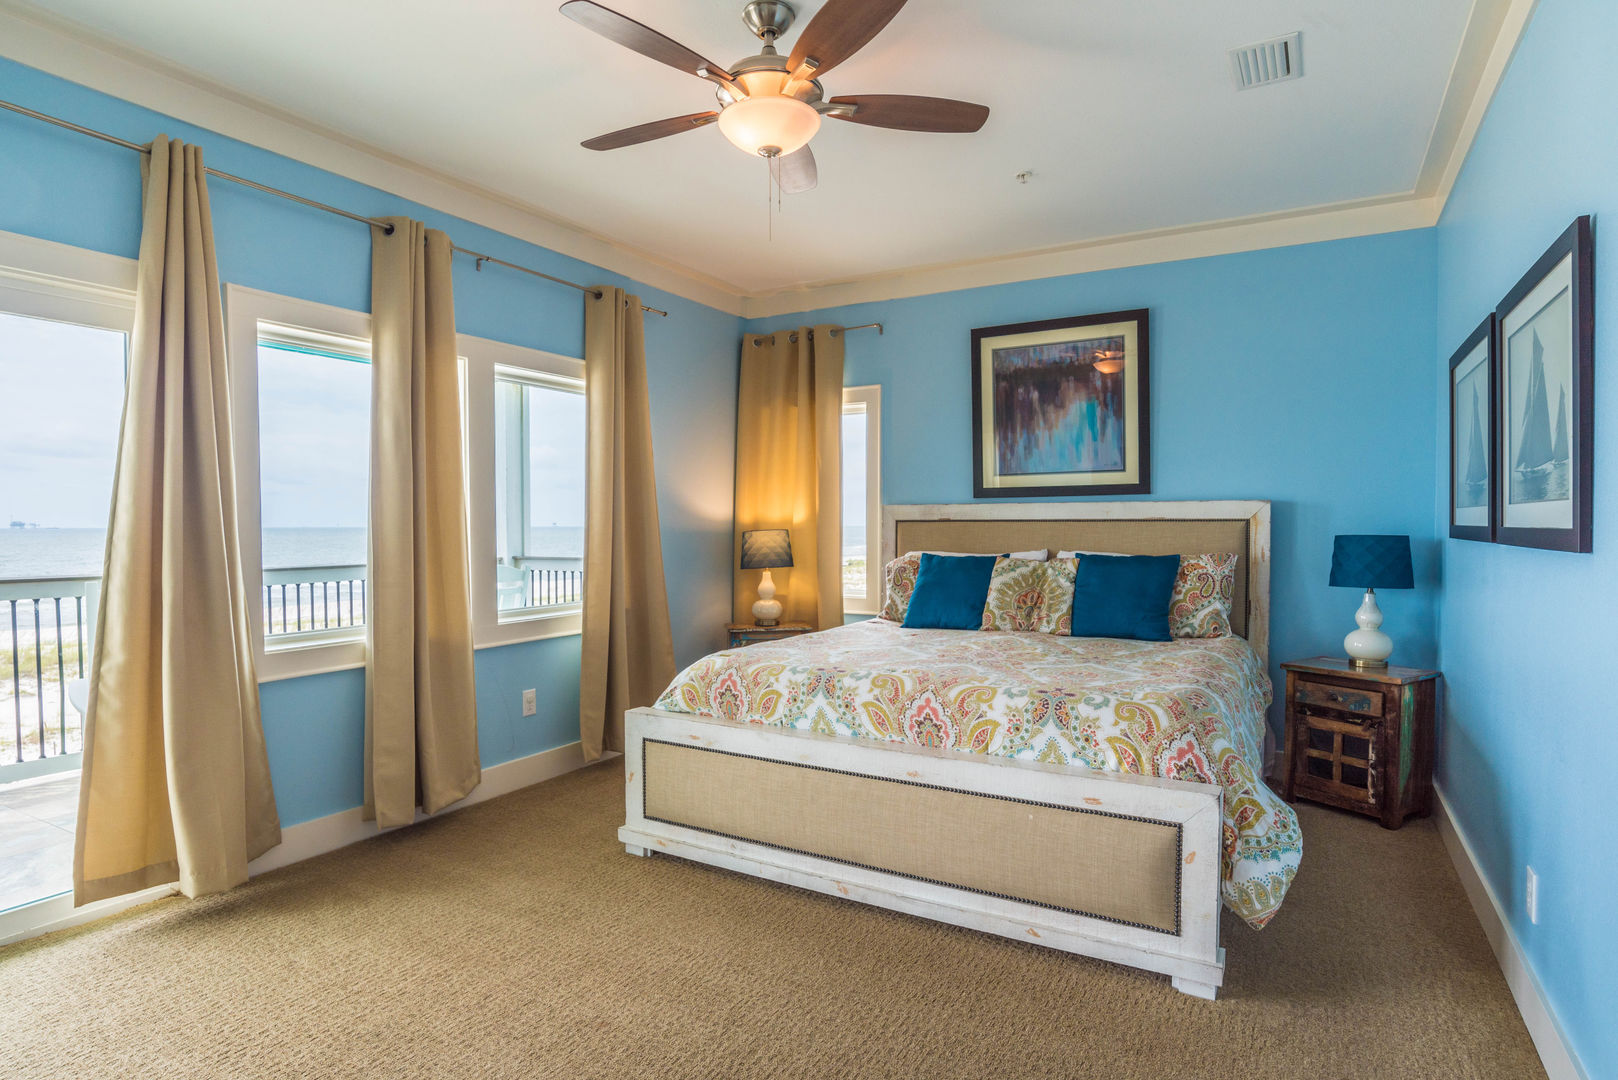 Additional Guest Room in our Fort Morgan, AL Vacation Rental